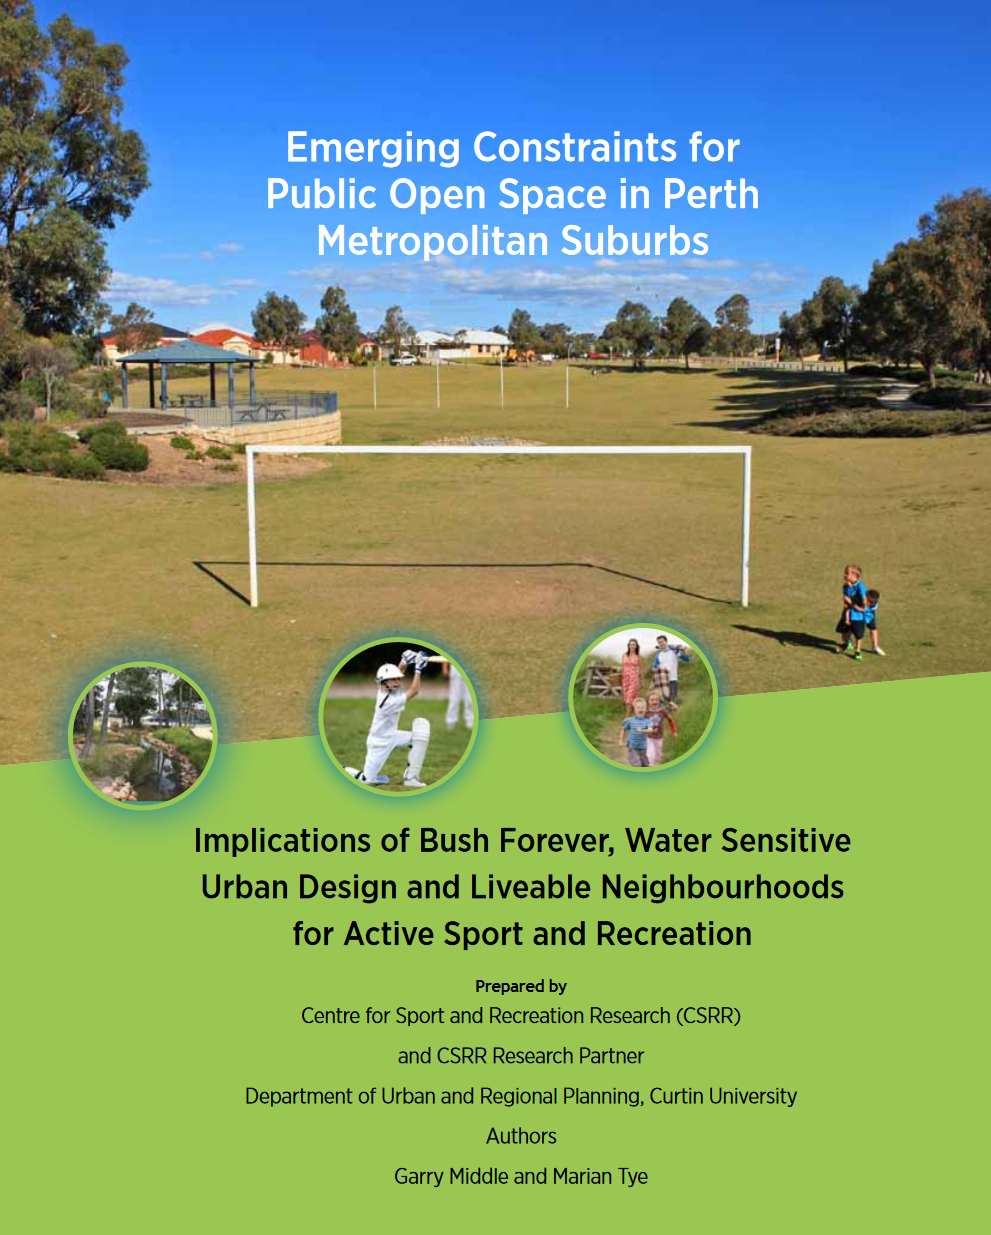 Emerging Constraints for Public Open Space in Perth Metropolitan Suburbs cover